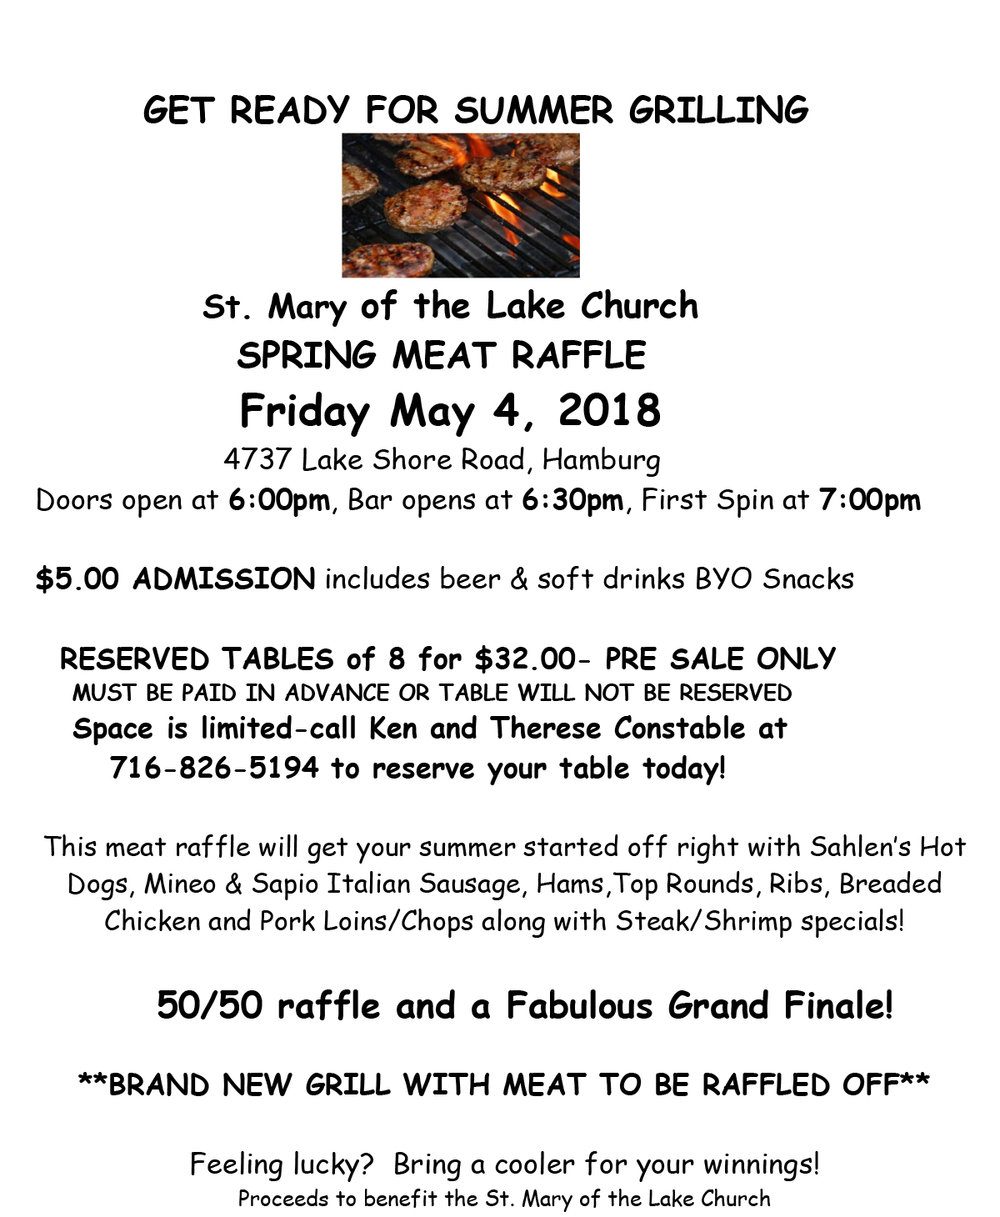 ST MARY OF THE LAKE SPRING MEAT RAFFLE FLYER 05-04-18.jpg